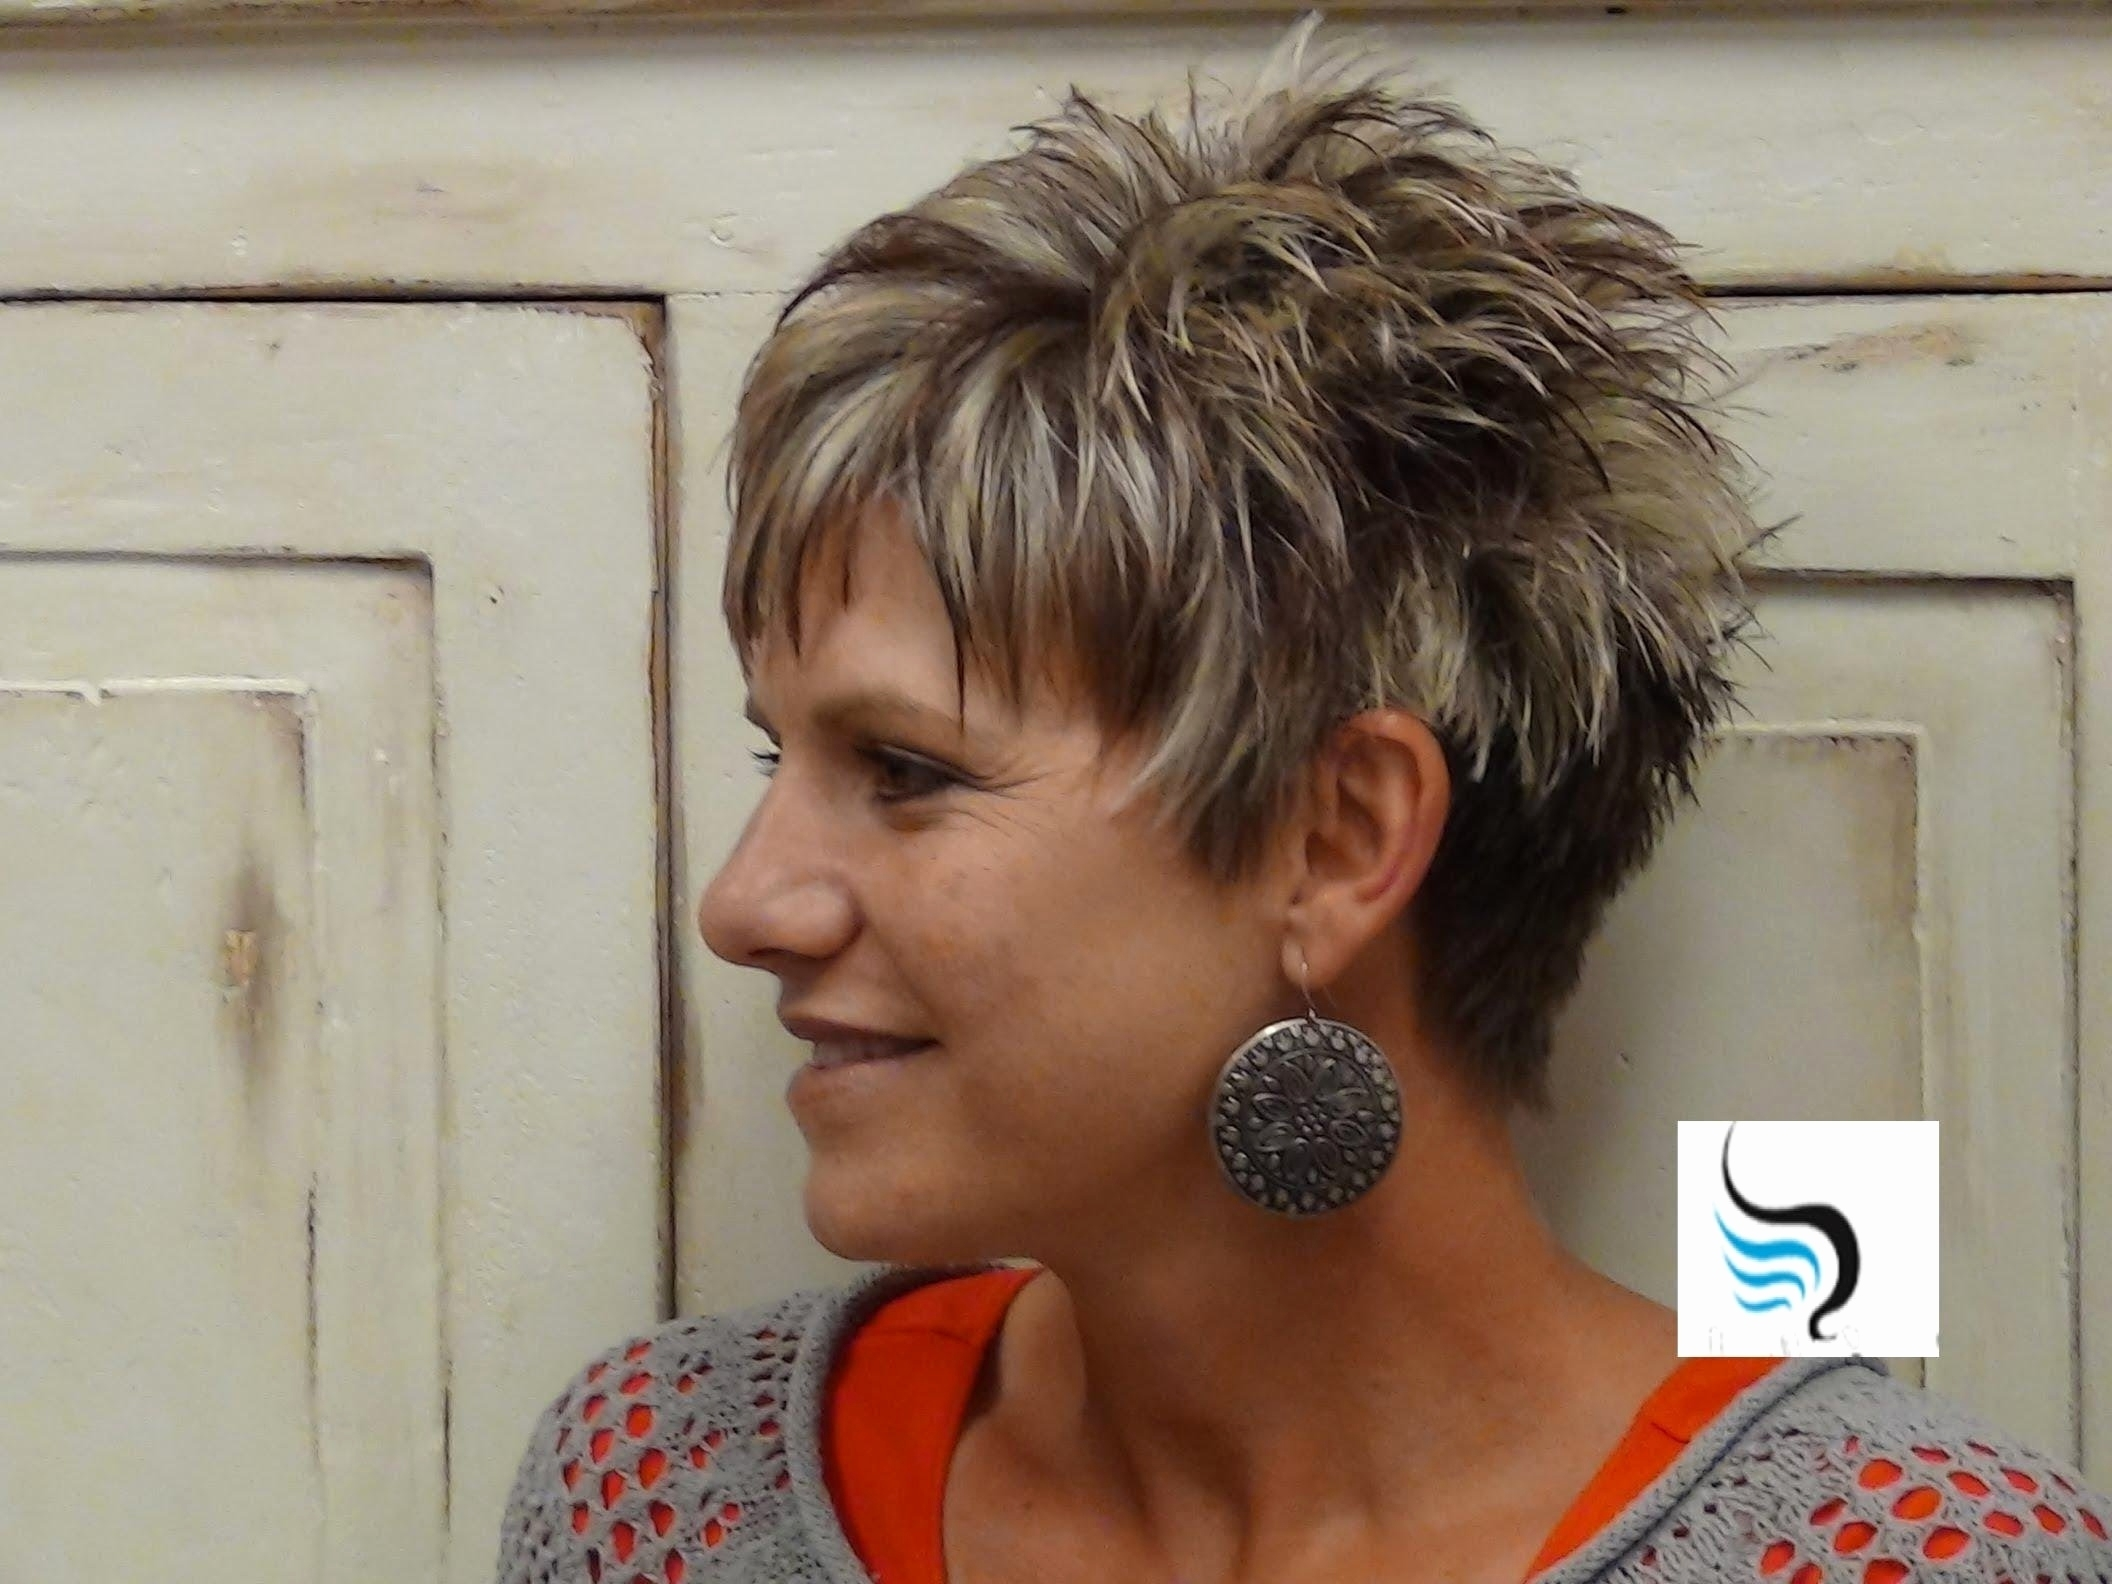 Explore Photos of Pixie Hairstyles For Over 60 (Showing 7 of 15 Photos)